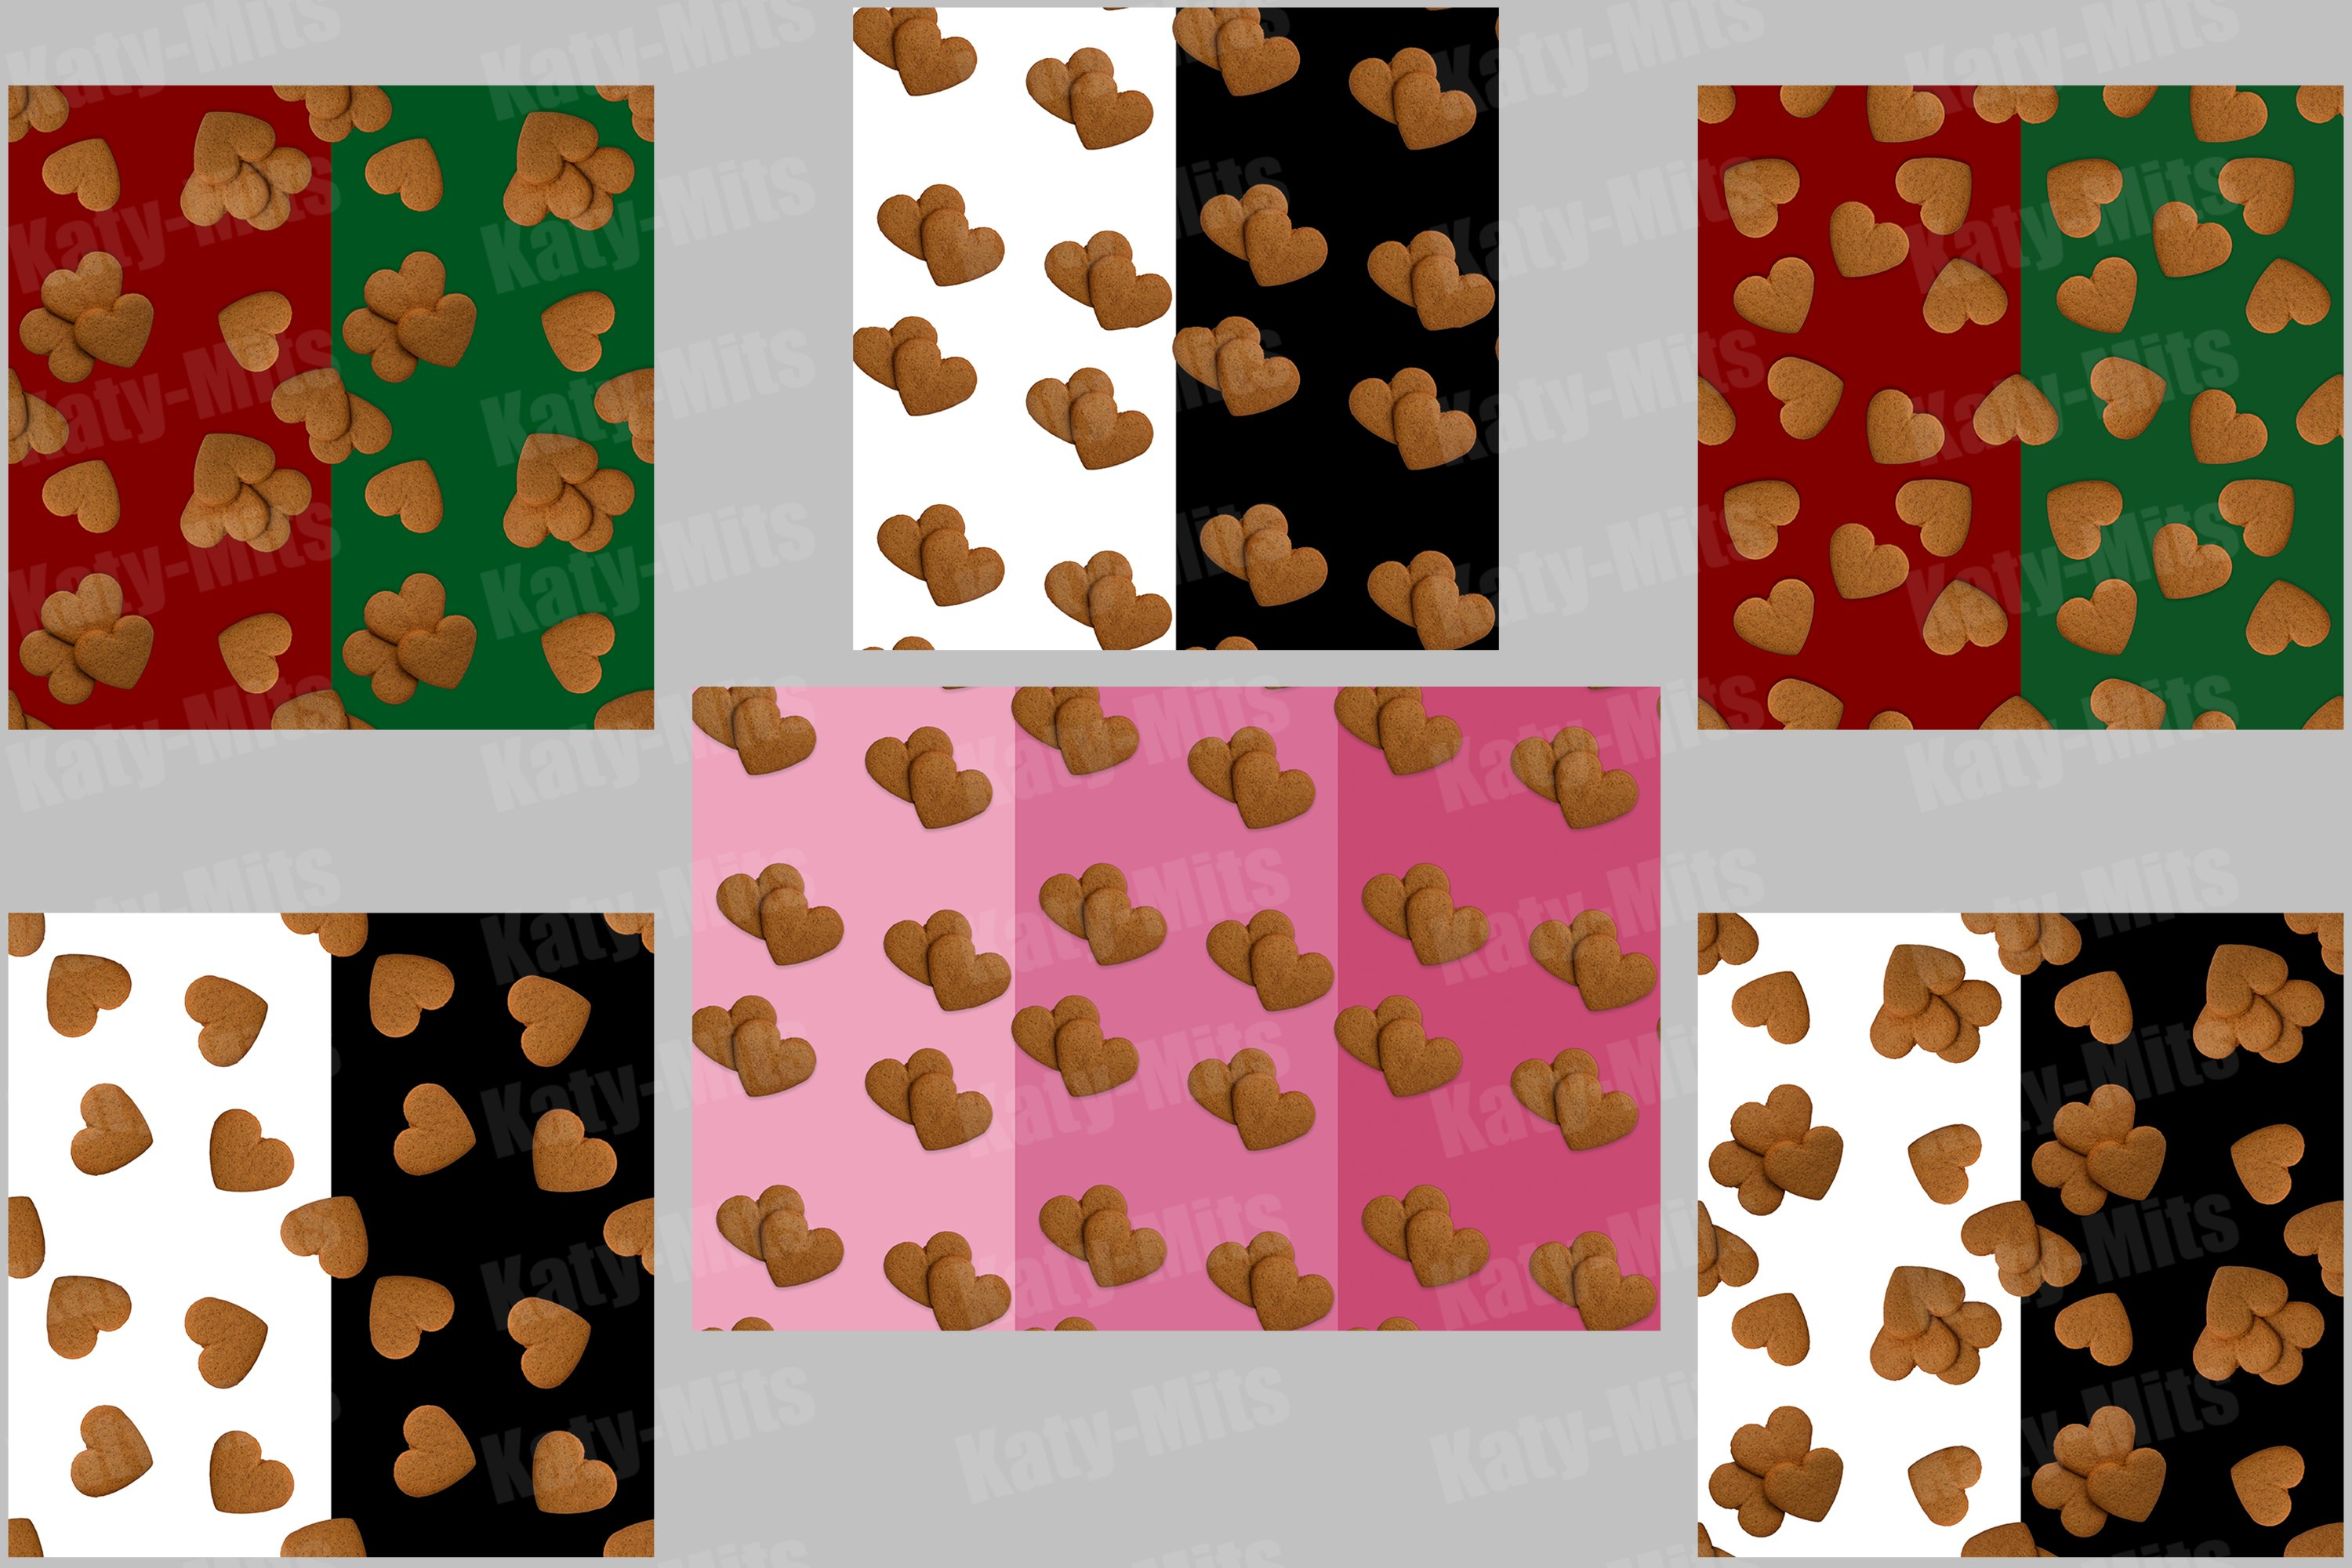 6 seamless patterns of heart shaped cookies example image 1